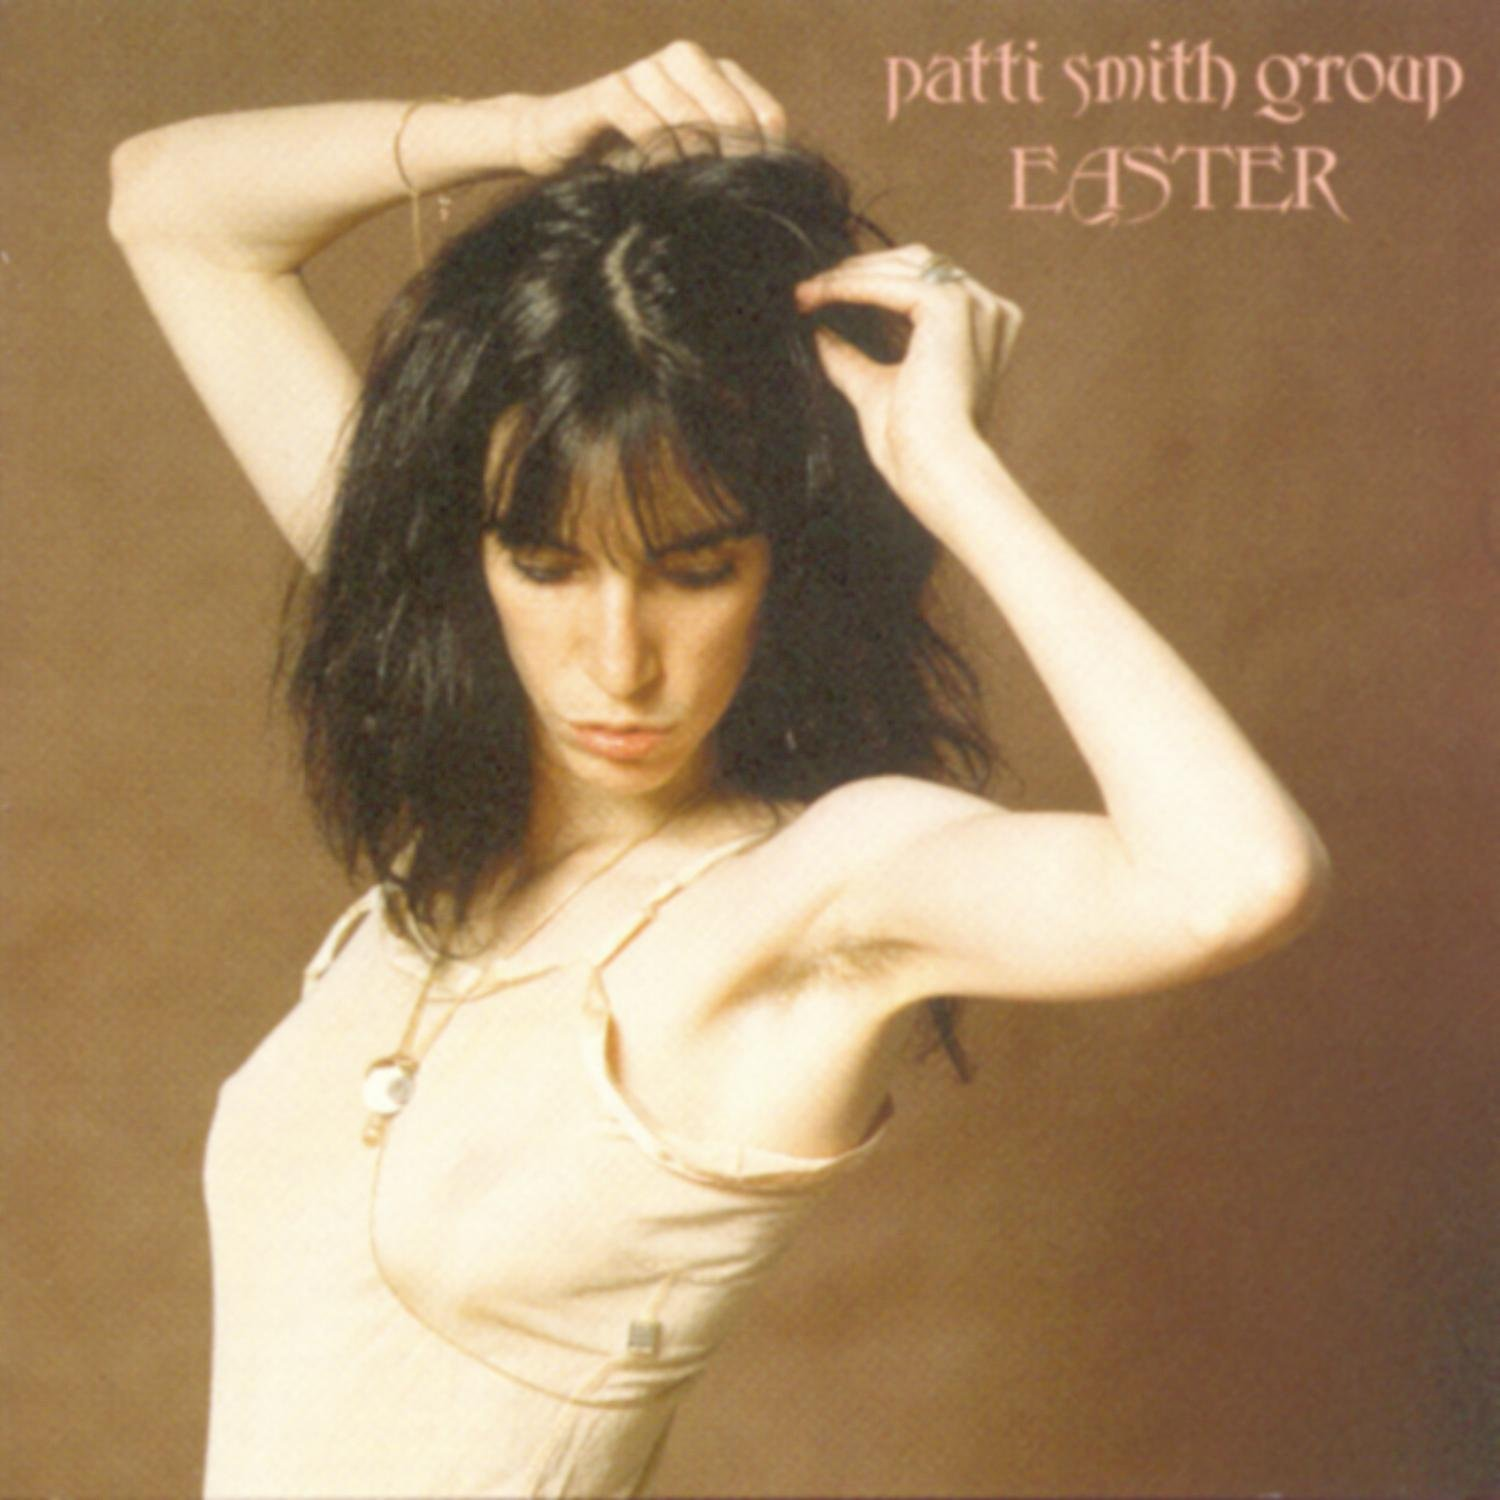 「Ghost Dance」収録アルバム『Easter』/Patti Smith Group